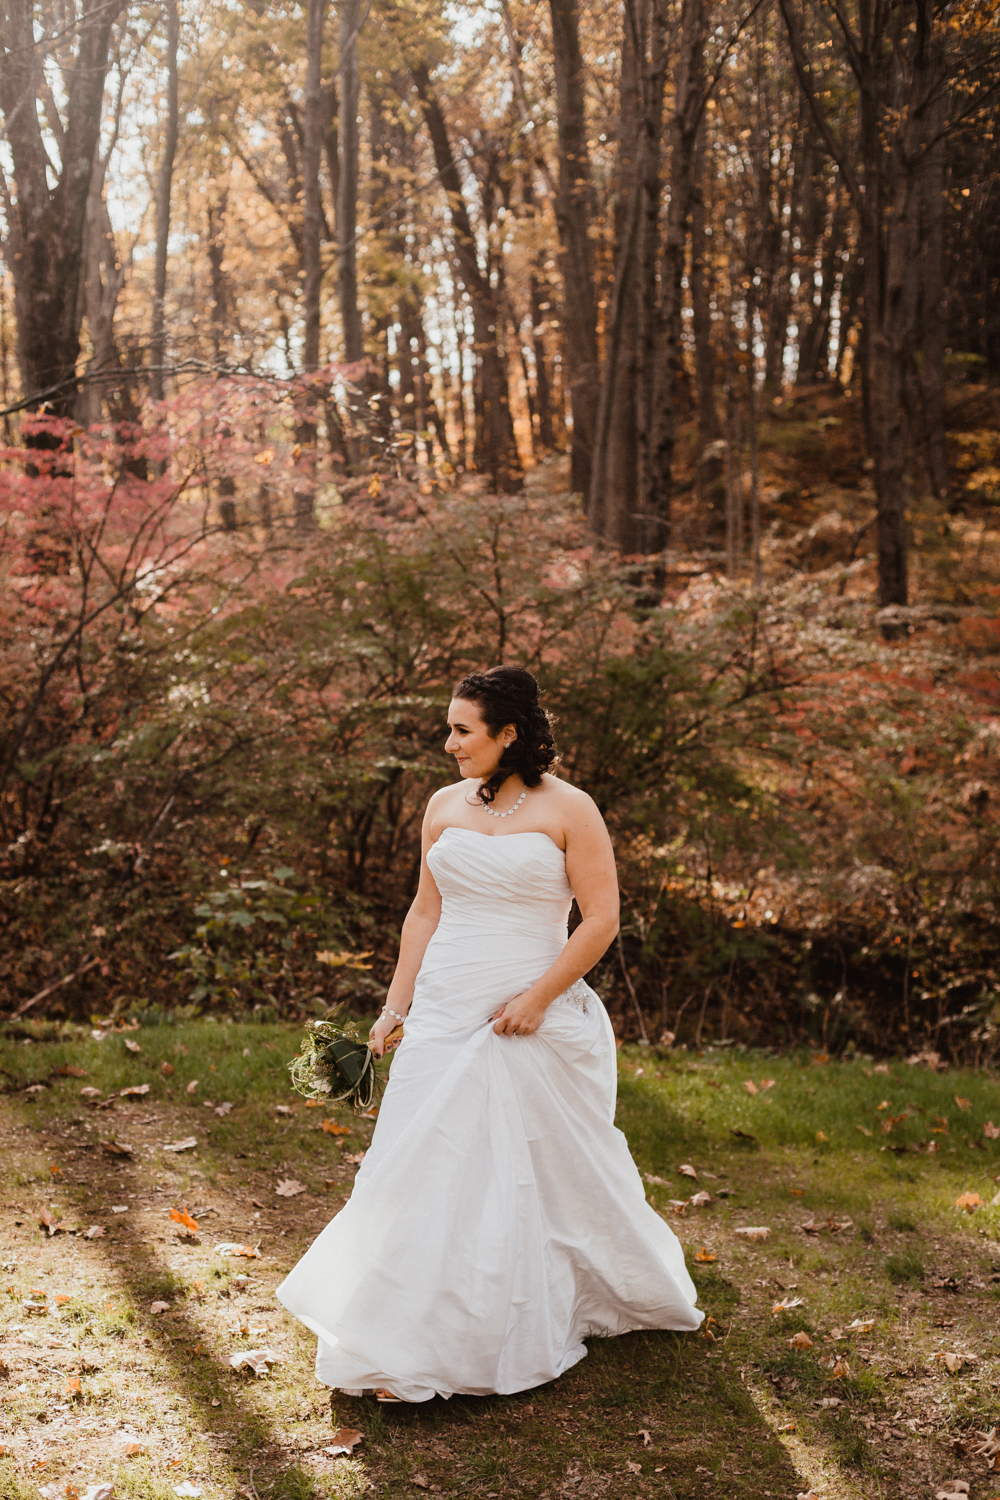 avon-old-farm-hotel-bride-connecticut-new-england-wedding-photography-atlanta-georgia.jpg